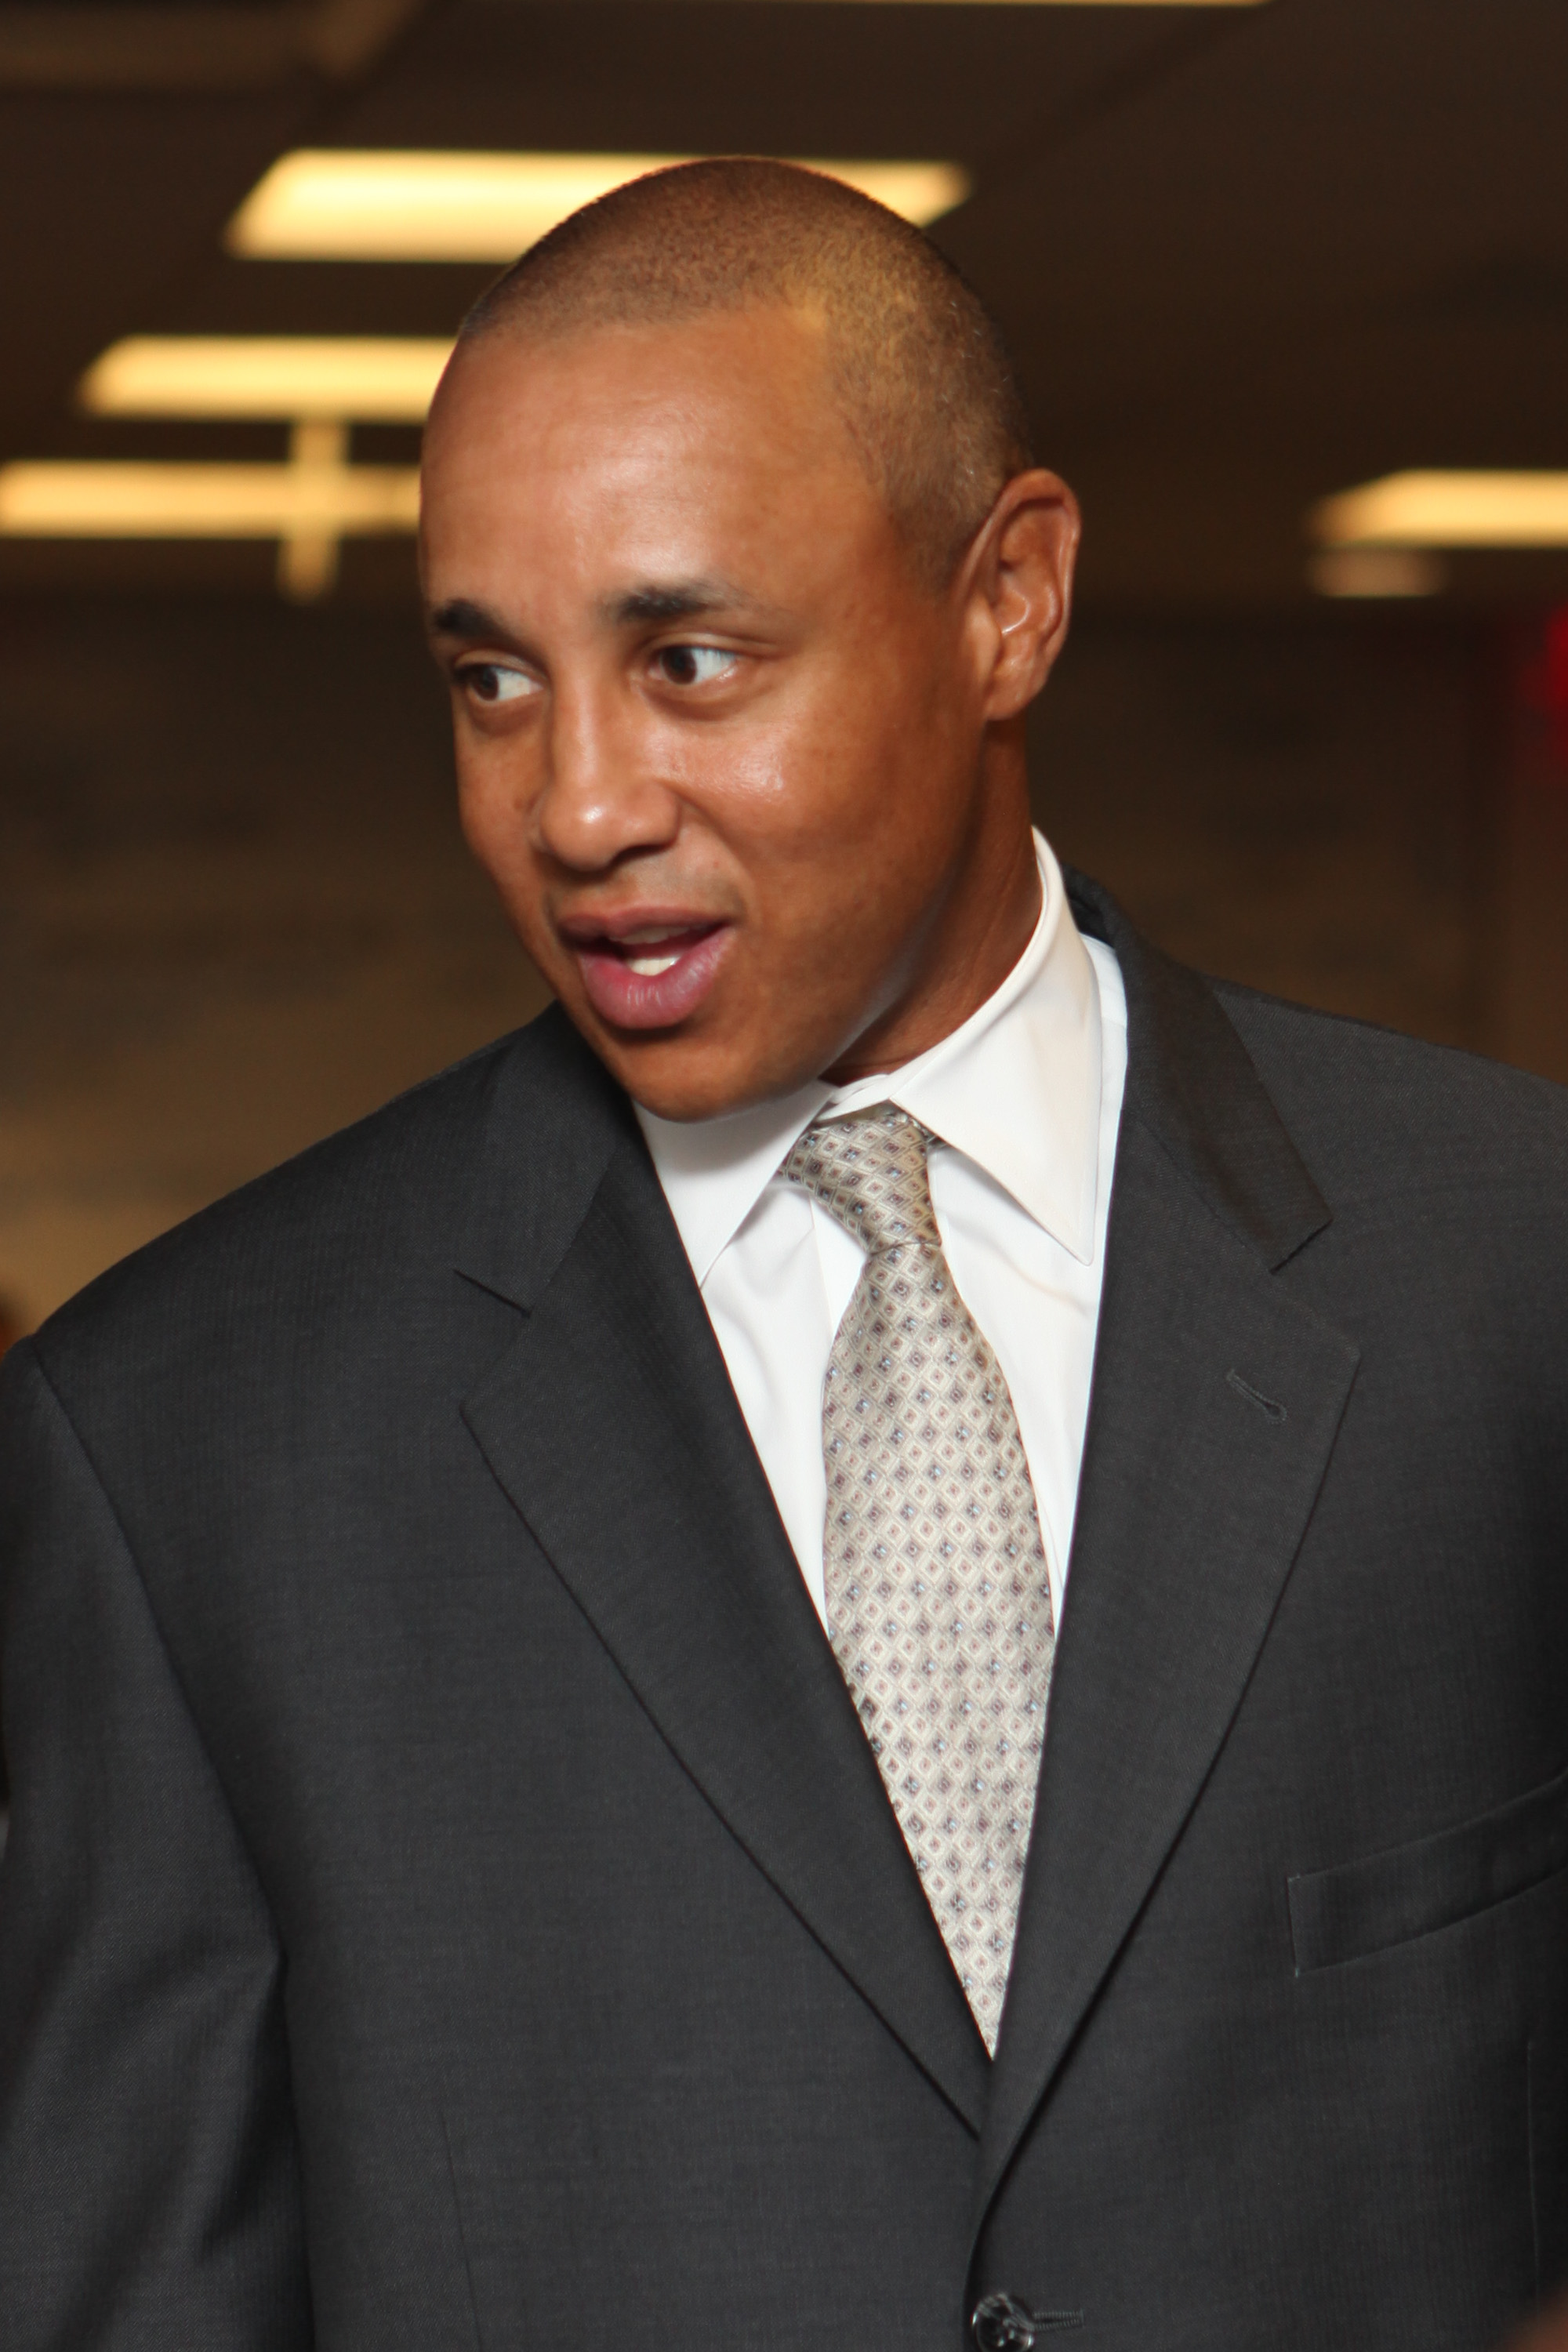 NEW YORK - SEPTEMBER 13:  Former NBA player John Starks attends the 6th Annual BGC Charity Day at BGC Partners, INC on September 13, 2010 in New York City.  (Photo by Chelsea Lauren/Getty Images)